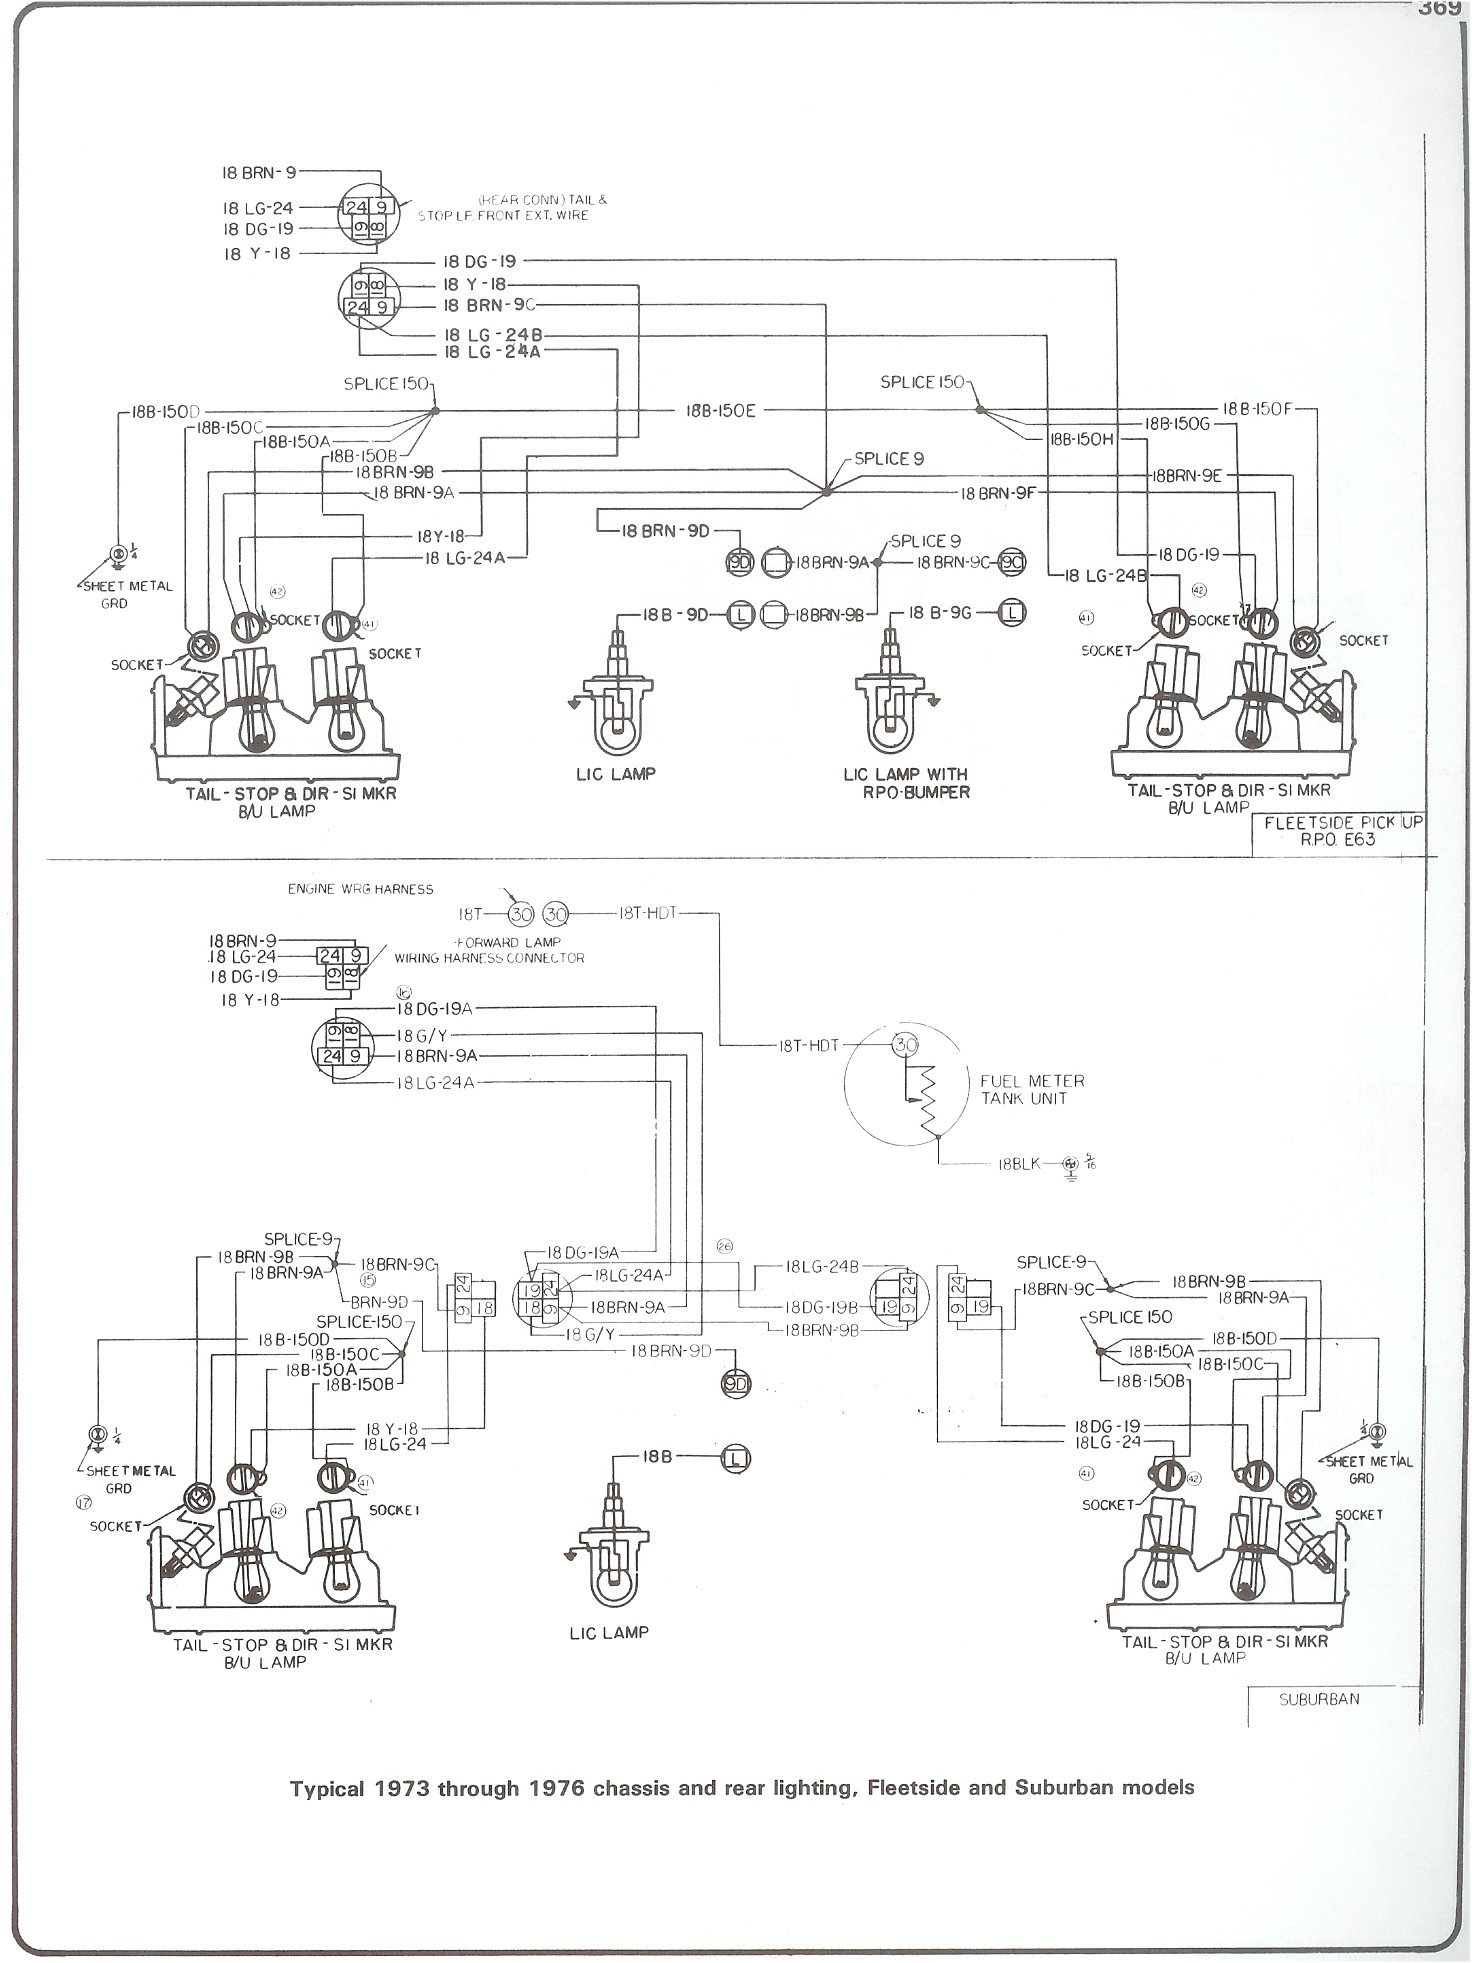 hight resolution of 75 truck wiring harness diagram wiring library 73 76 chassis rear lighting fleetside and suburban